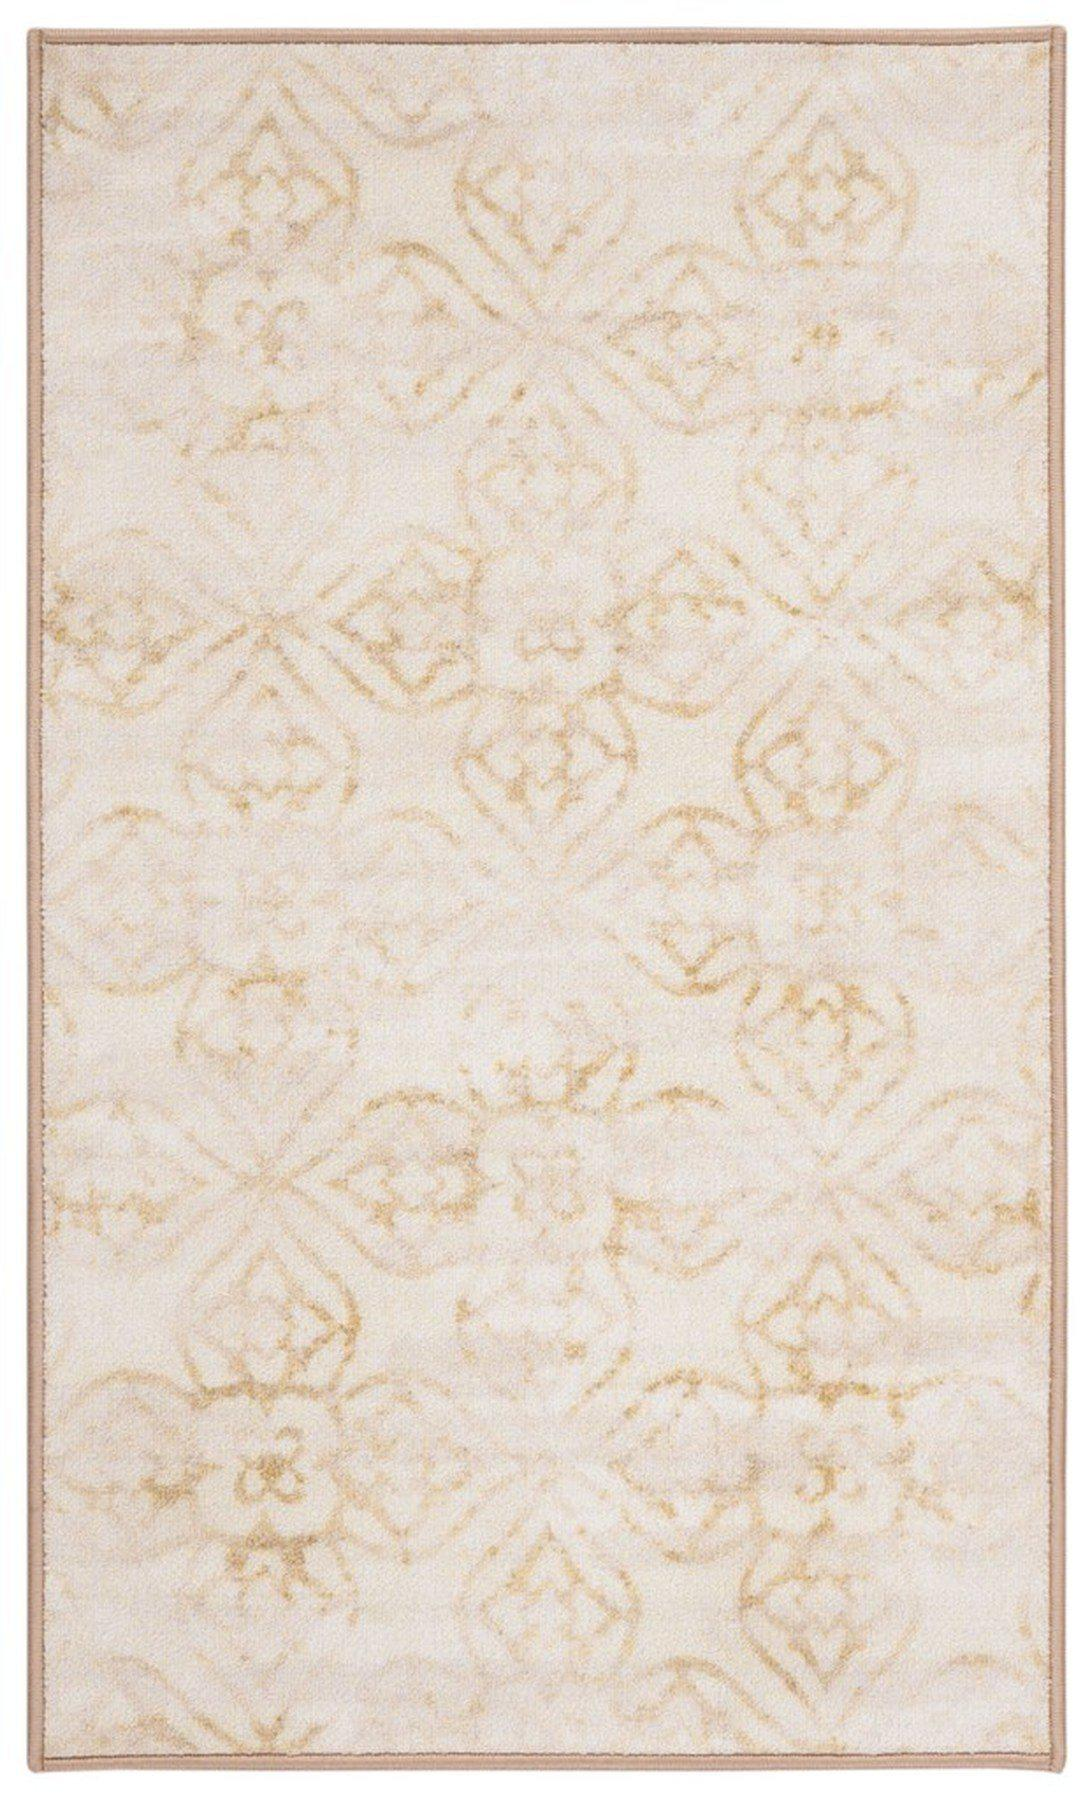 "Safavieh Collection Inspired by Disney's Live Action Film Aladdin - Desert Rug, Ivory / Gold-Area Rug-Safavieh-2' 3"" X 3' 9""-The Rug Truck"